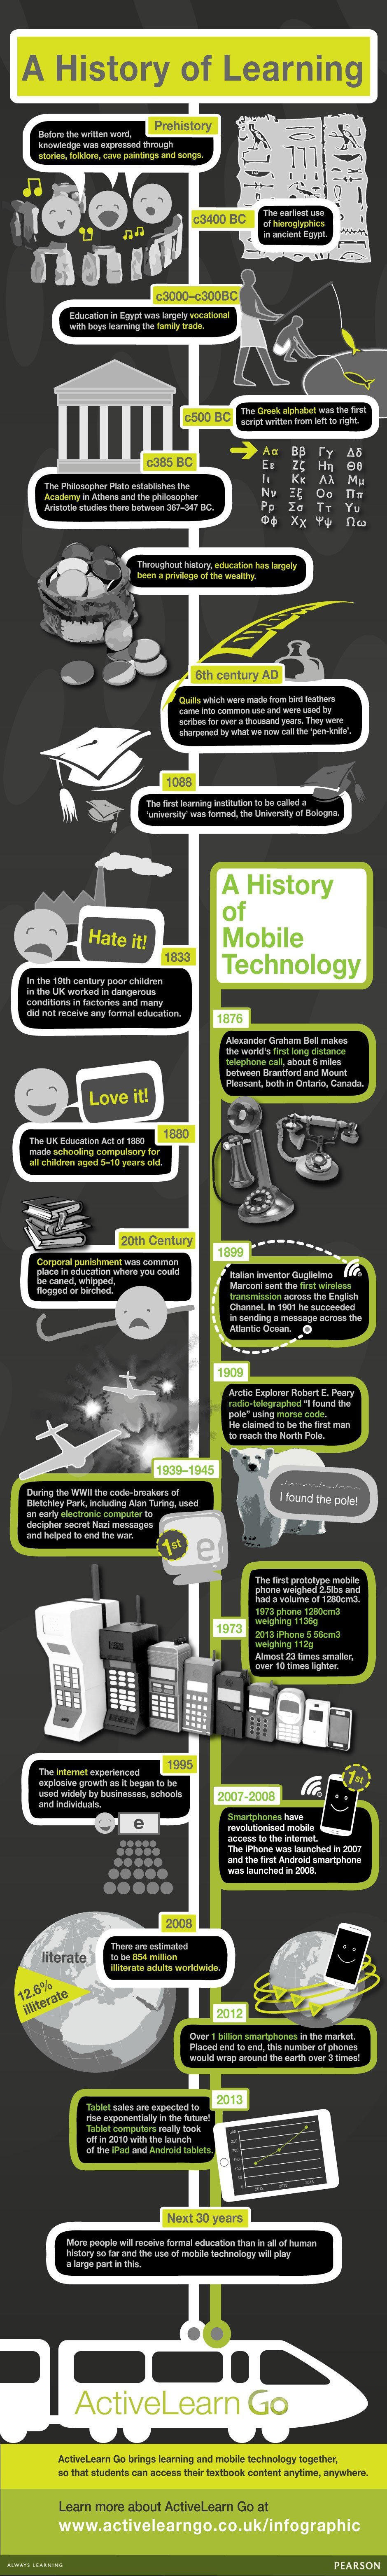 S416-ActiveLearn-Go-infographic-FINAL-07.10-1